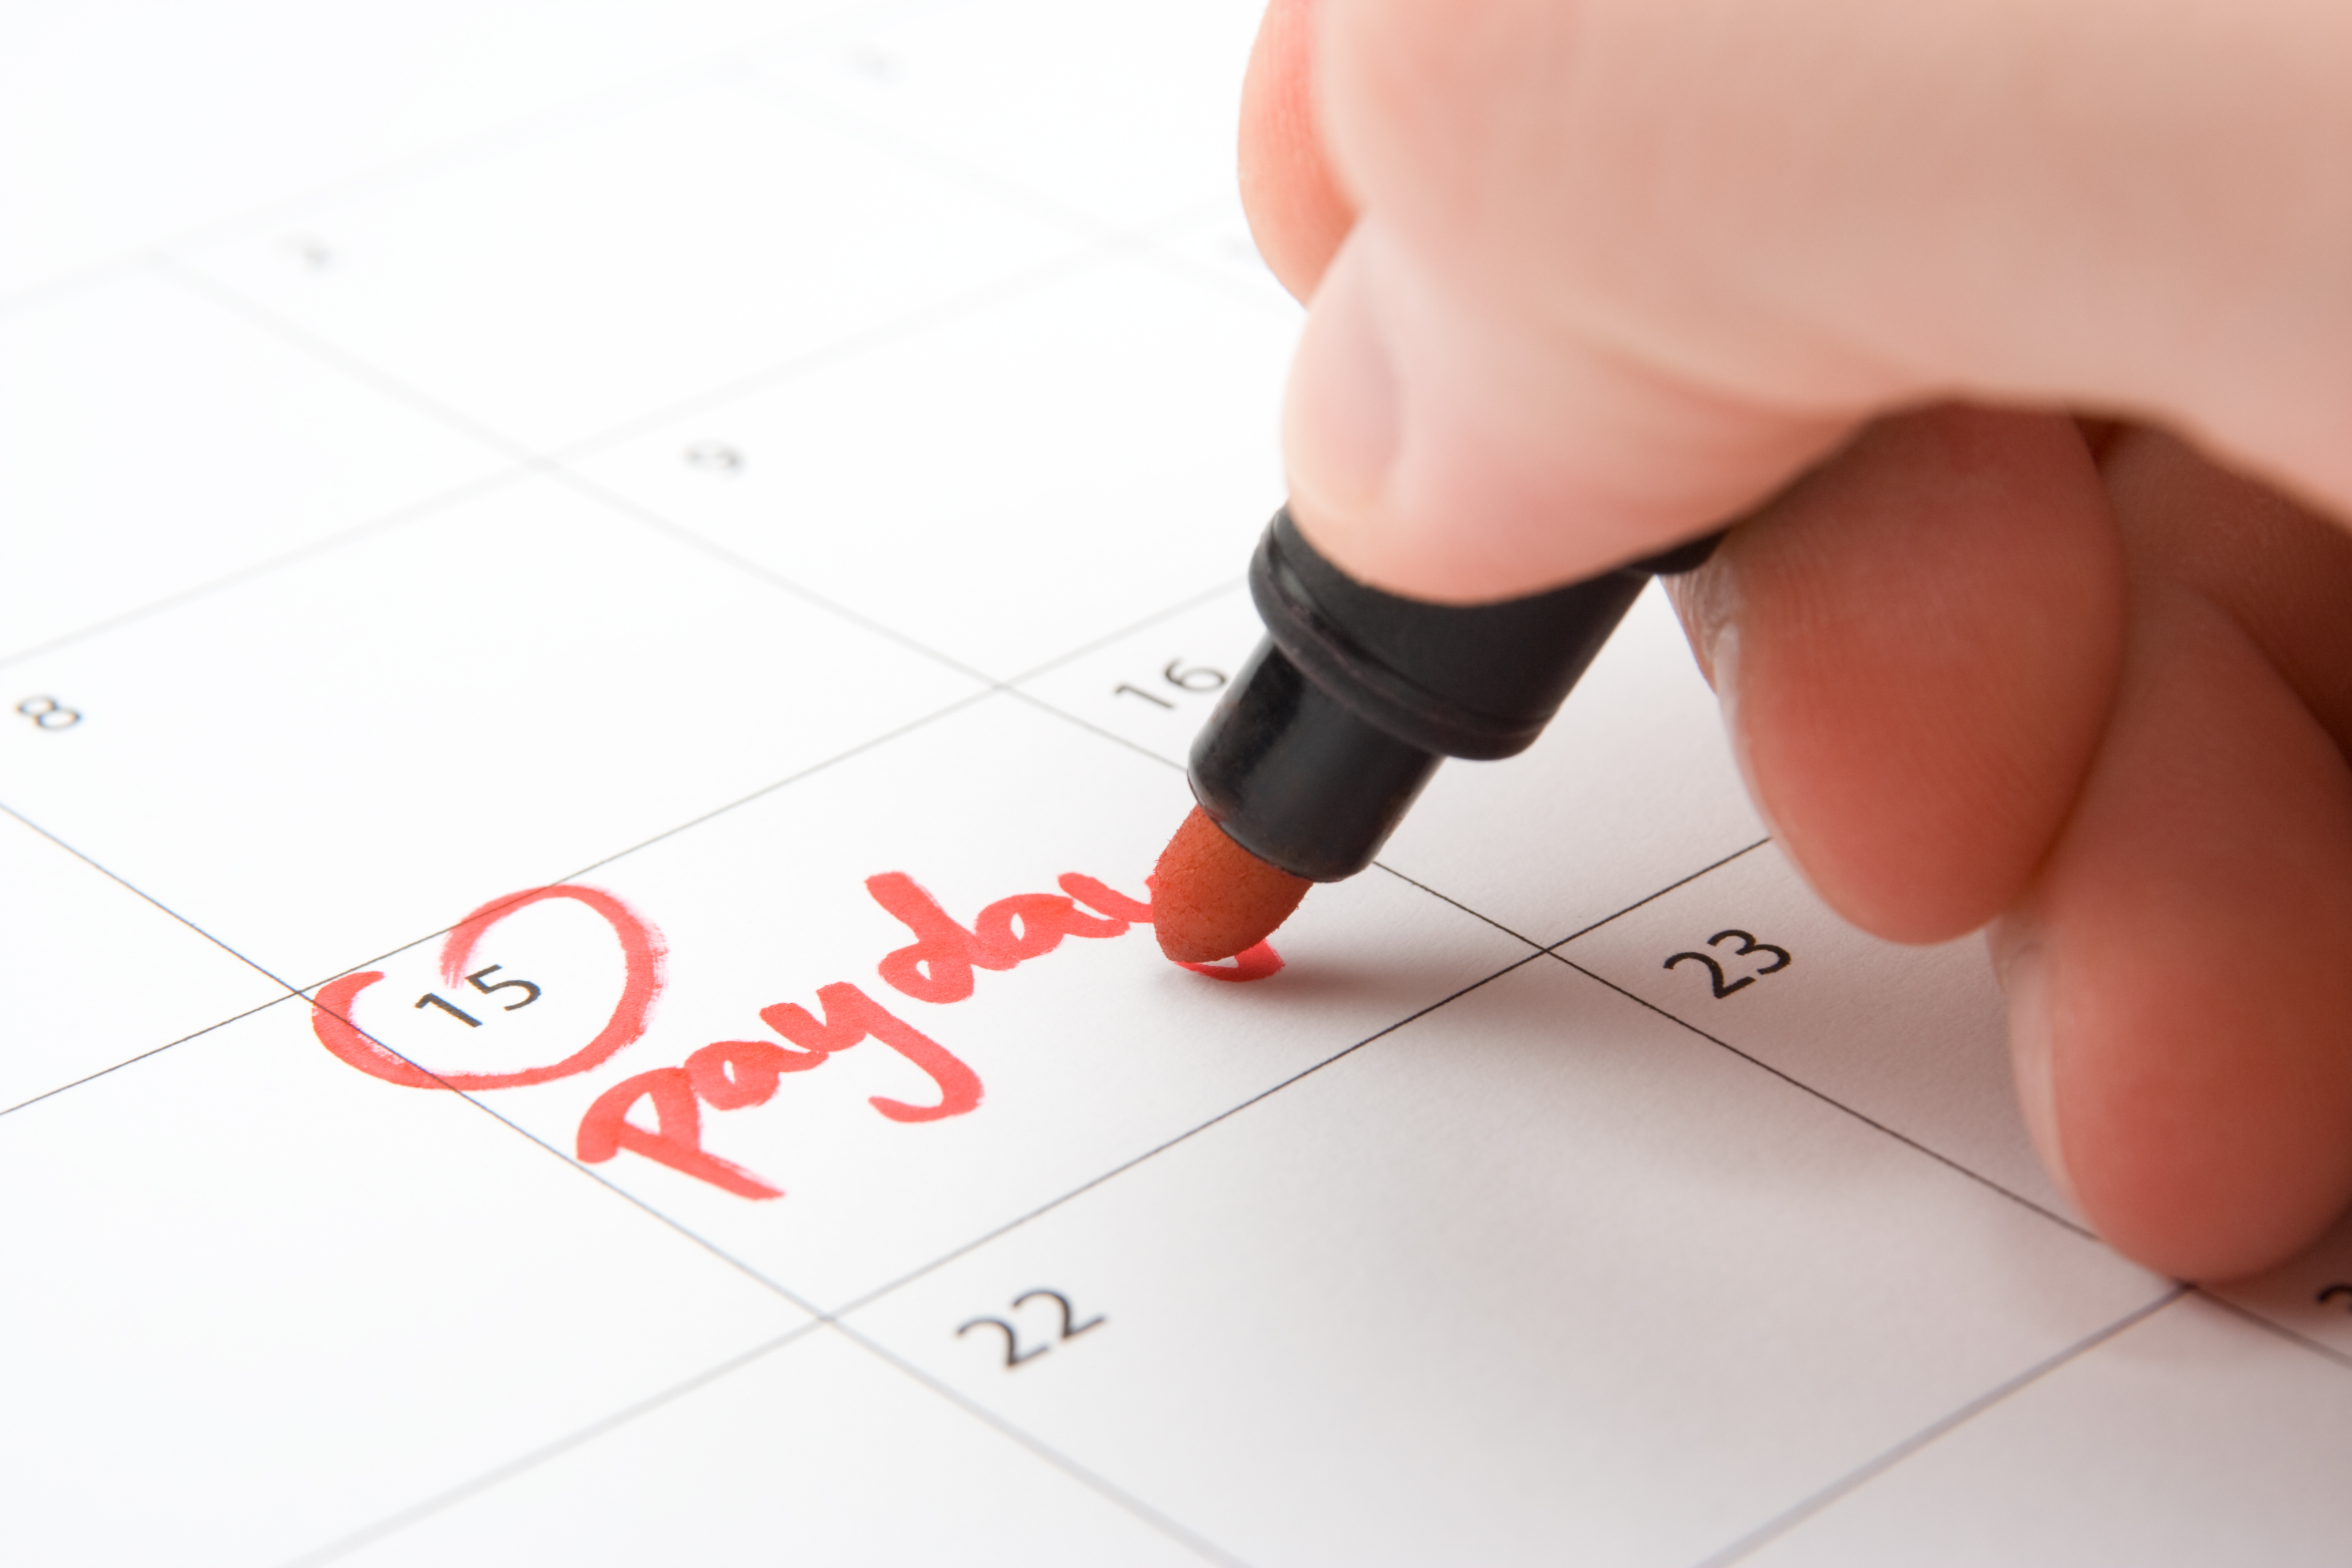 Hand write payday in to calendar (lead a hand-to-mouth existence)